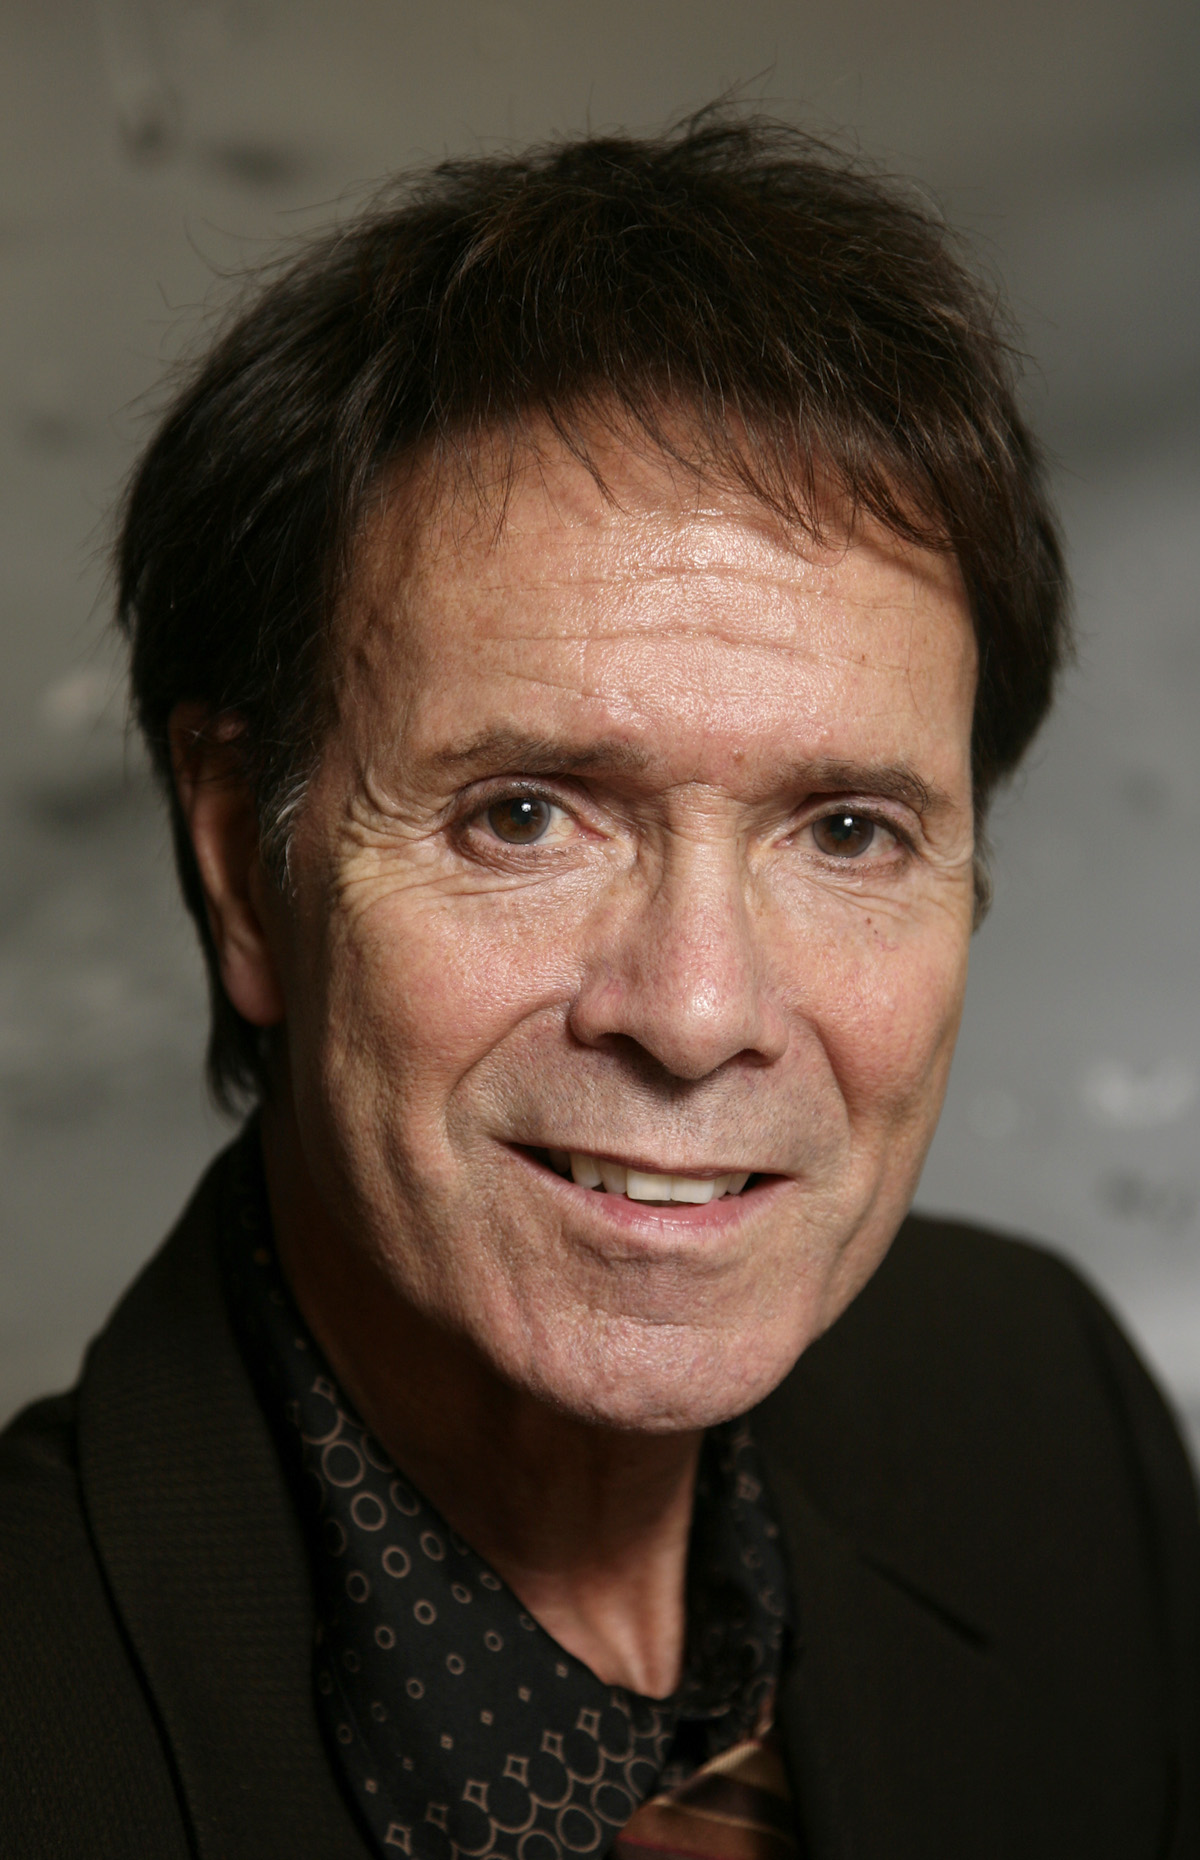 Sir Cliff Richard's home was searched as part of the investigation.